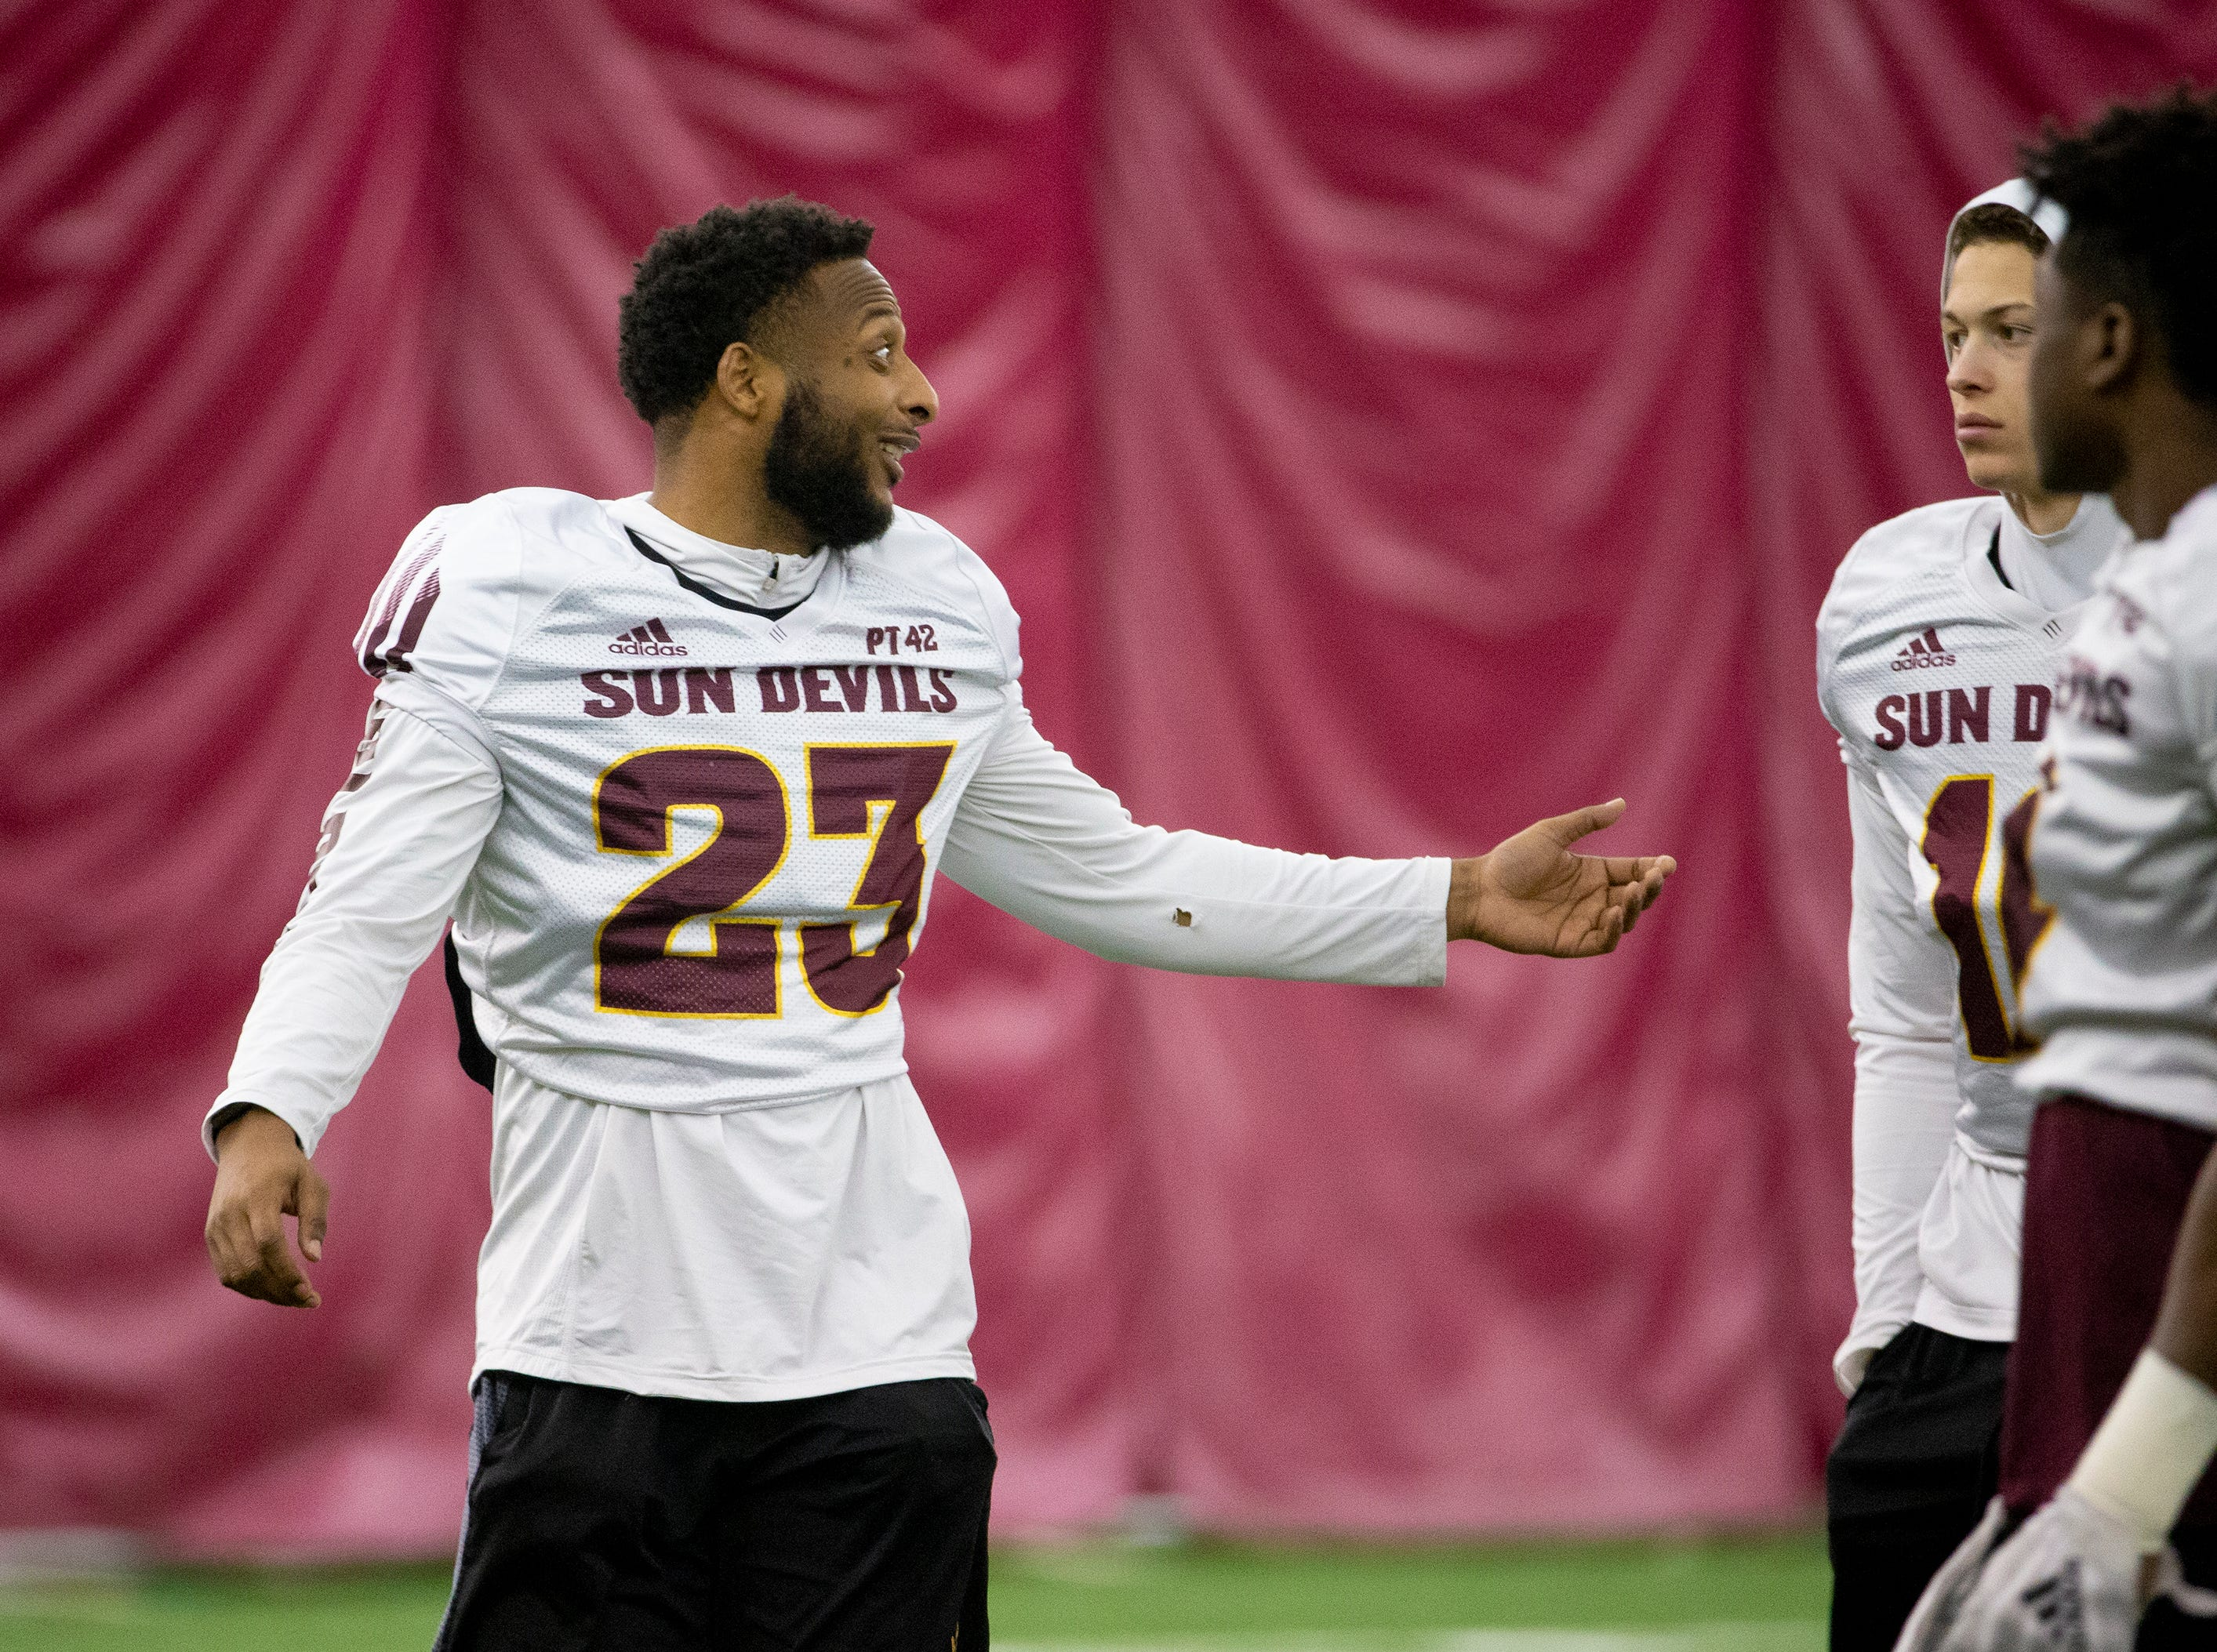 Linebacker Tyler Whiley shares a laugh with his teammates during ASU spring football practice in the Verde Dickey Dome in Tempe on February 21.